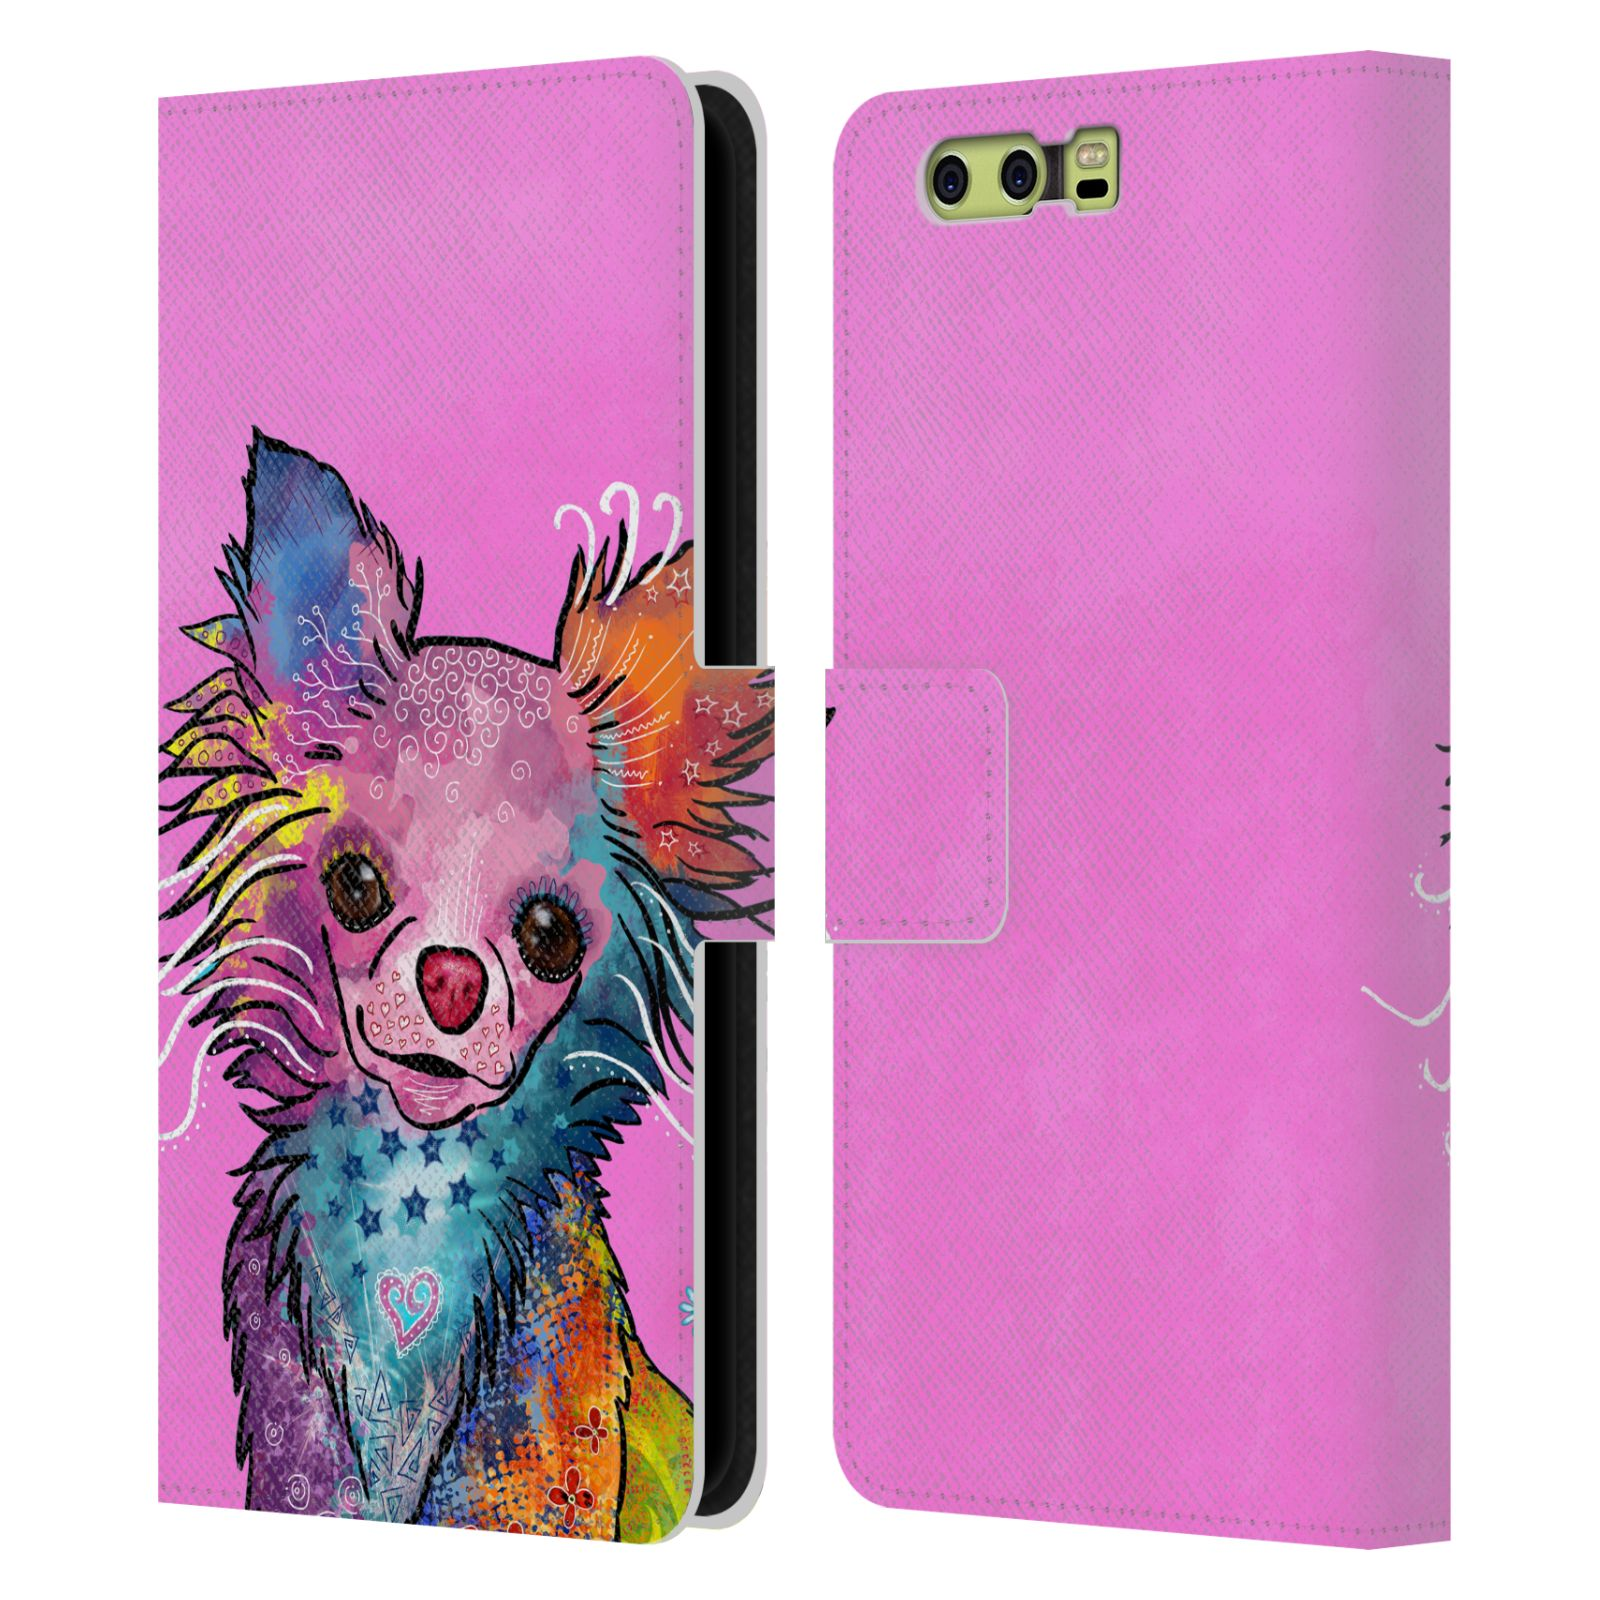 OFFICIAL-DUIRWAIGH-ANIMALS-LEATHER-BOOK-WALLET-CASE-COVER-FOR-HUAWEI-PHONES